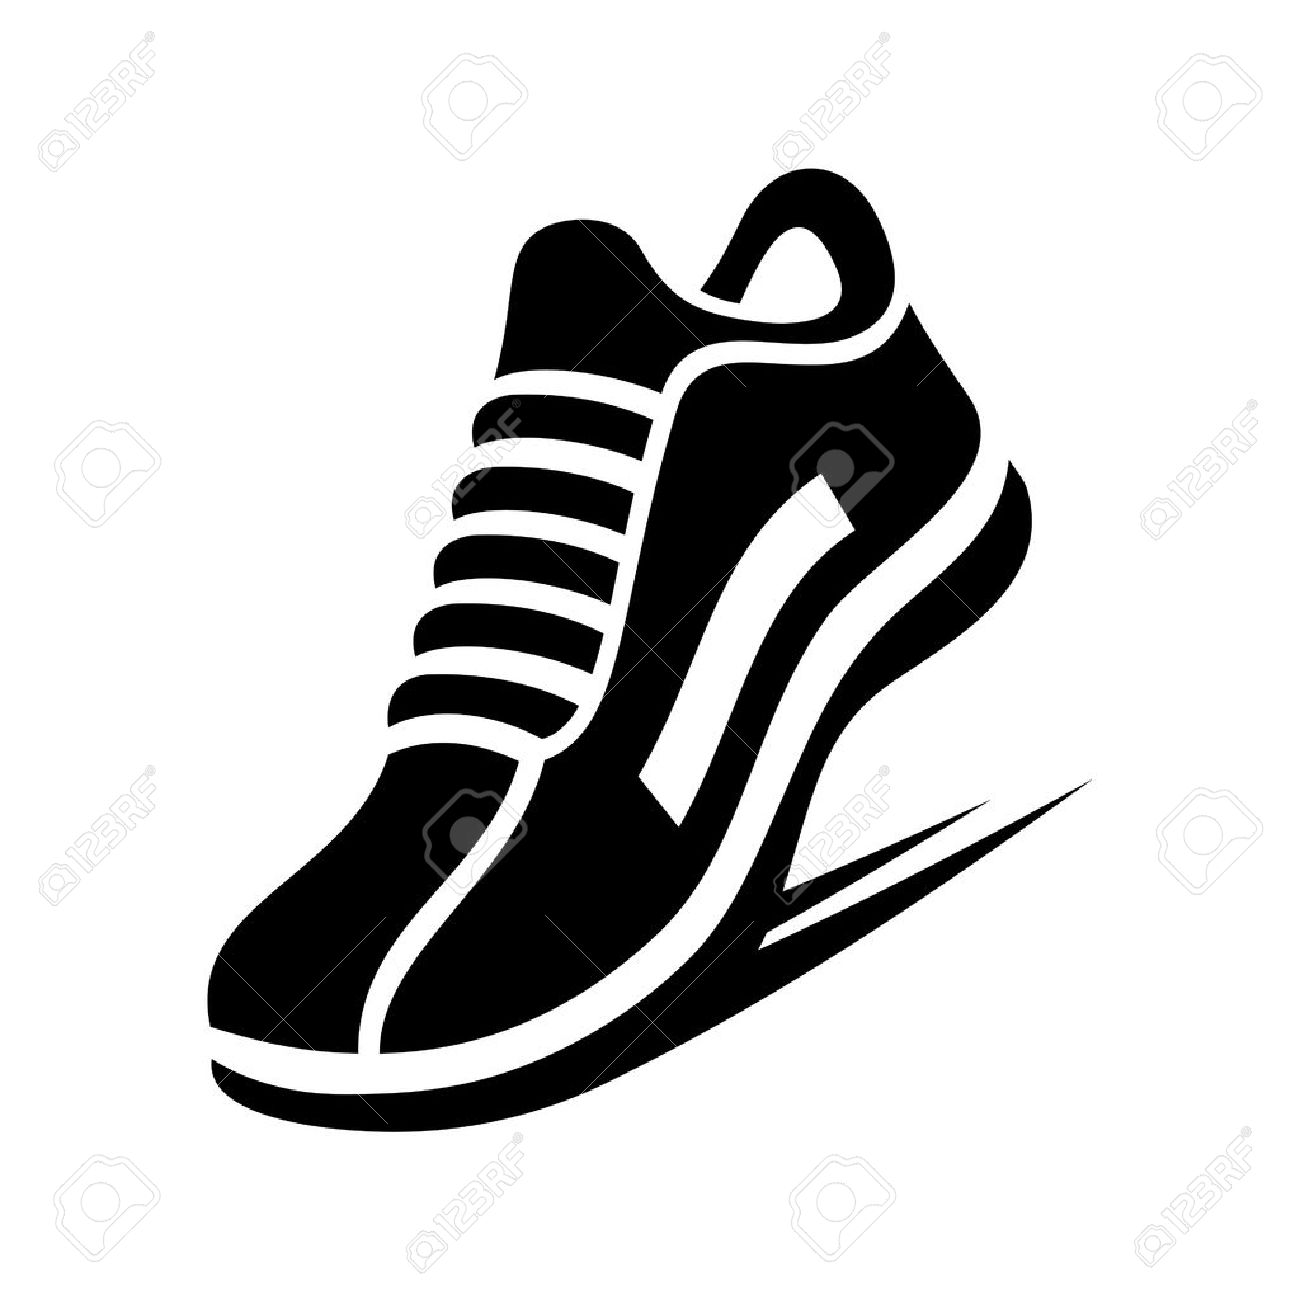 680 Running Shoe free clipart.